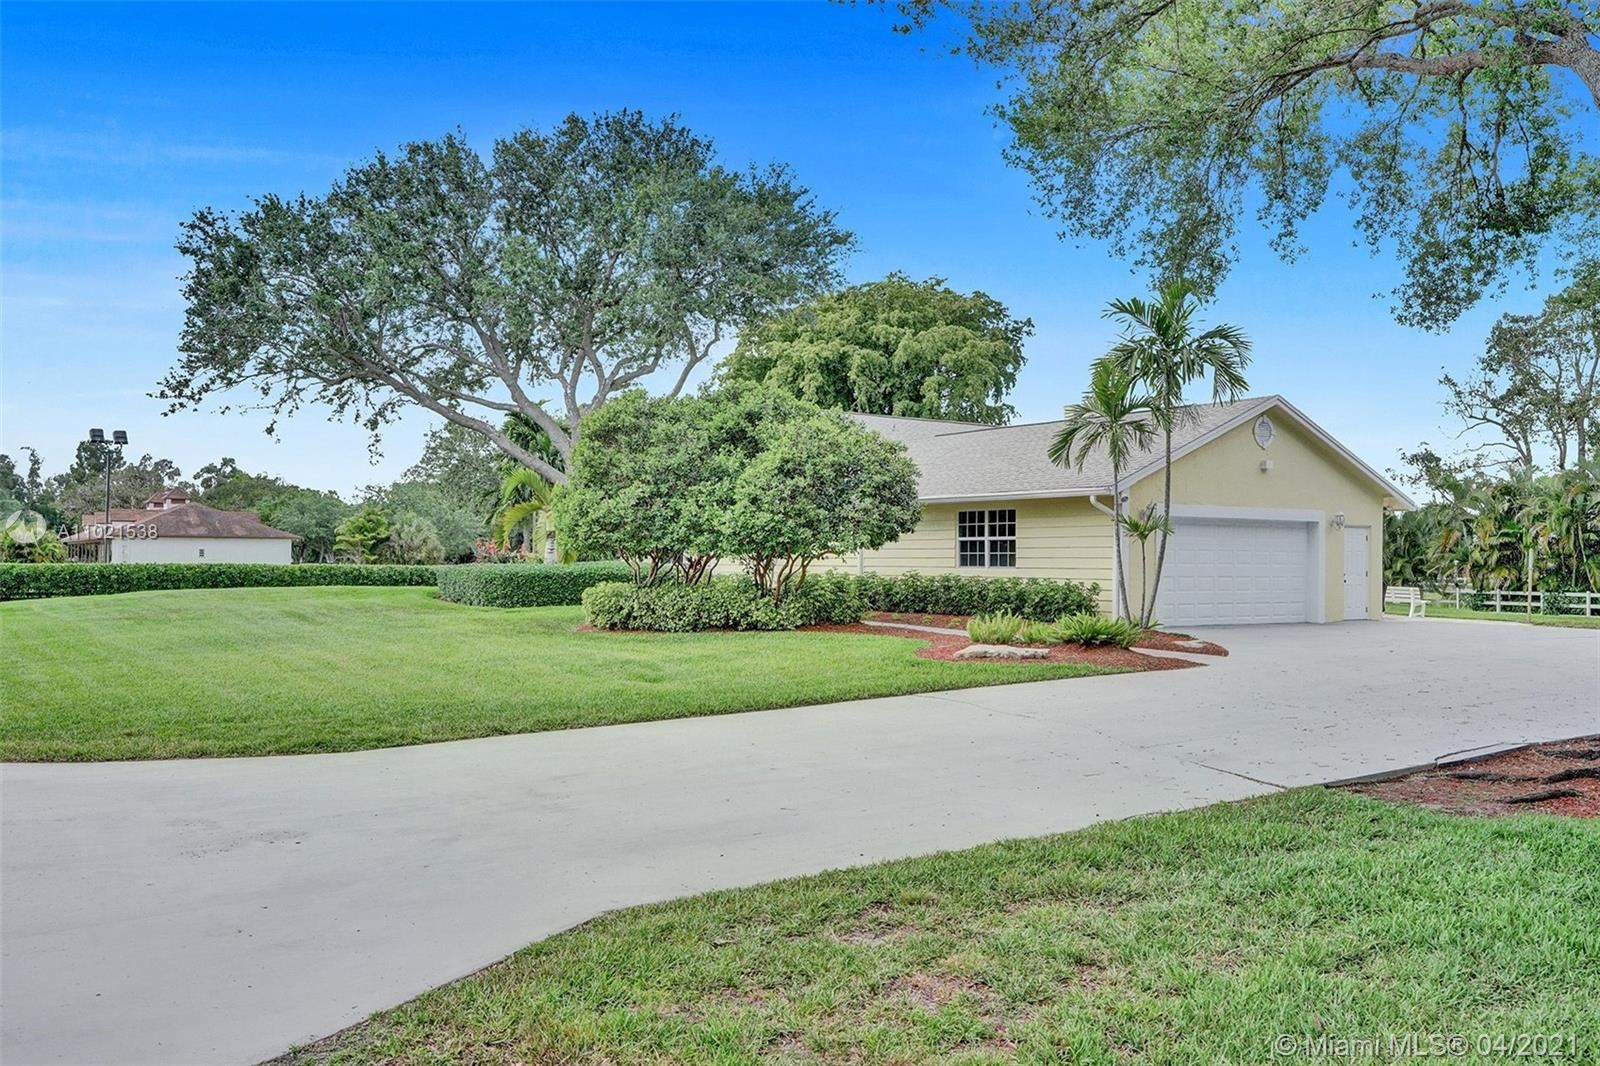 6821 SW 55th St, Davie, FL 33314 - #: A11021538